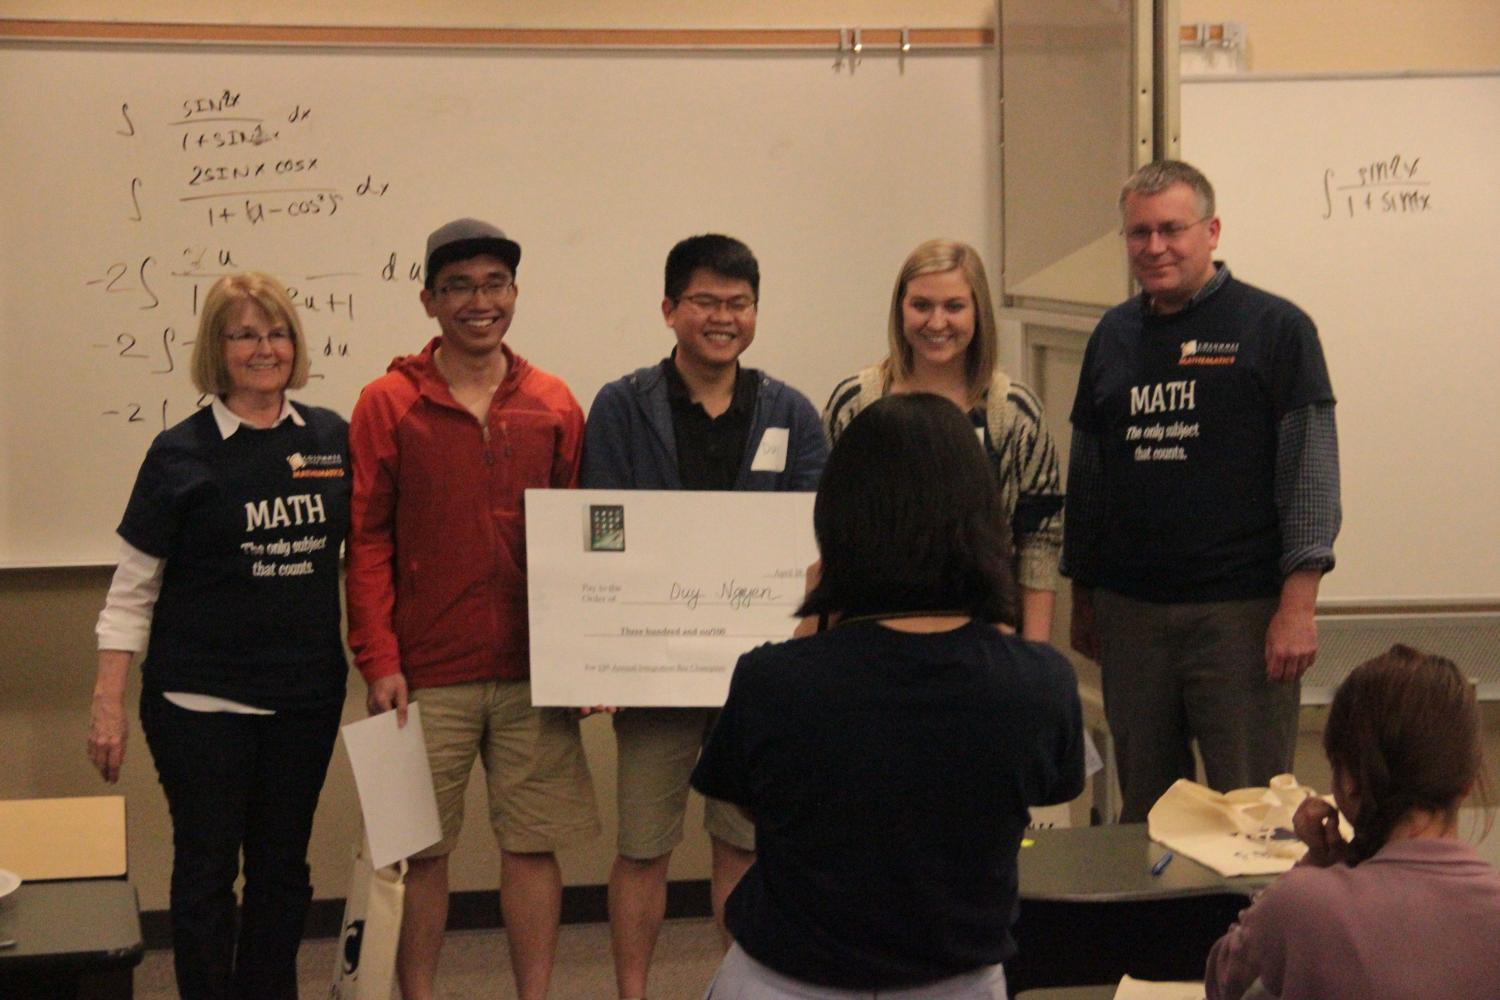 Duy+Phuc+Nguyen+won+the+math+competition+and+was+awarded+%24300+and+an+iPad.